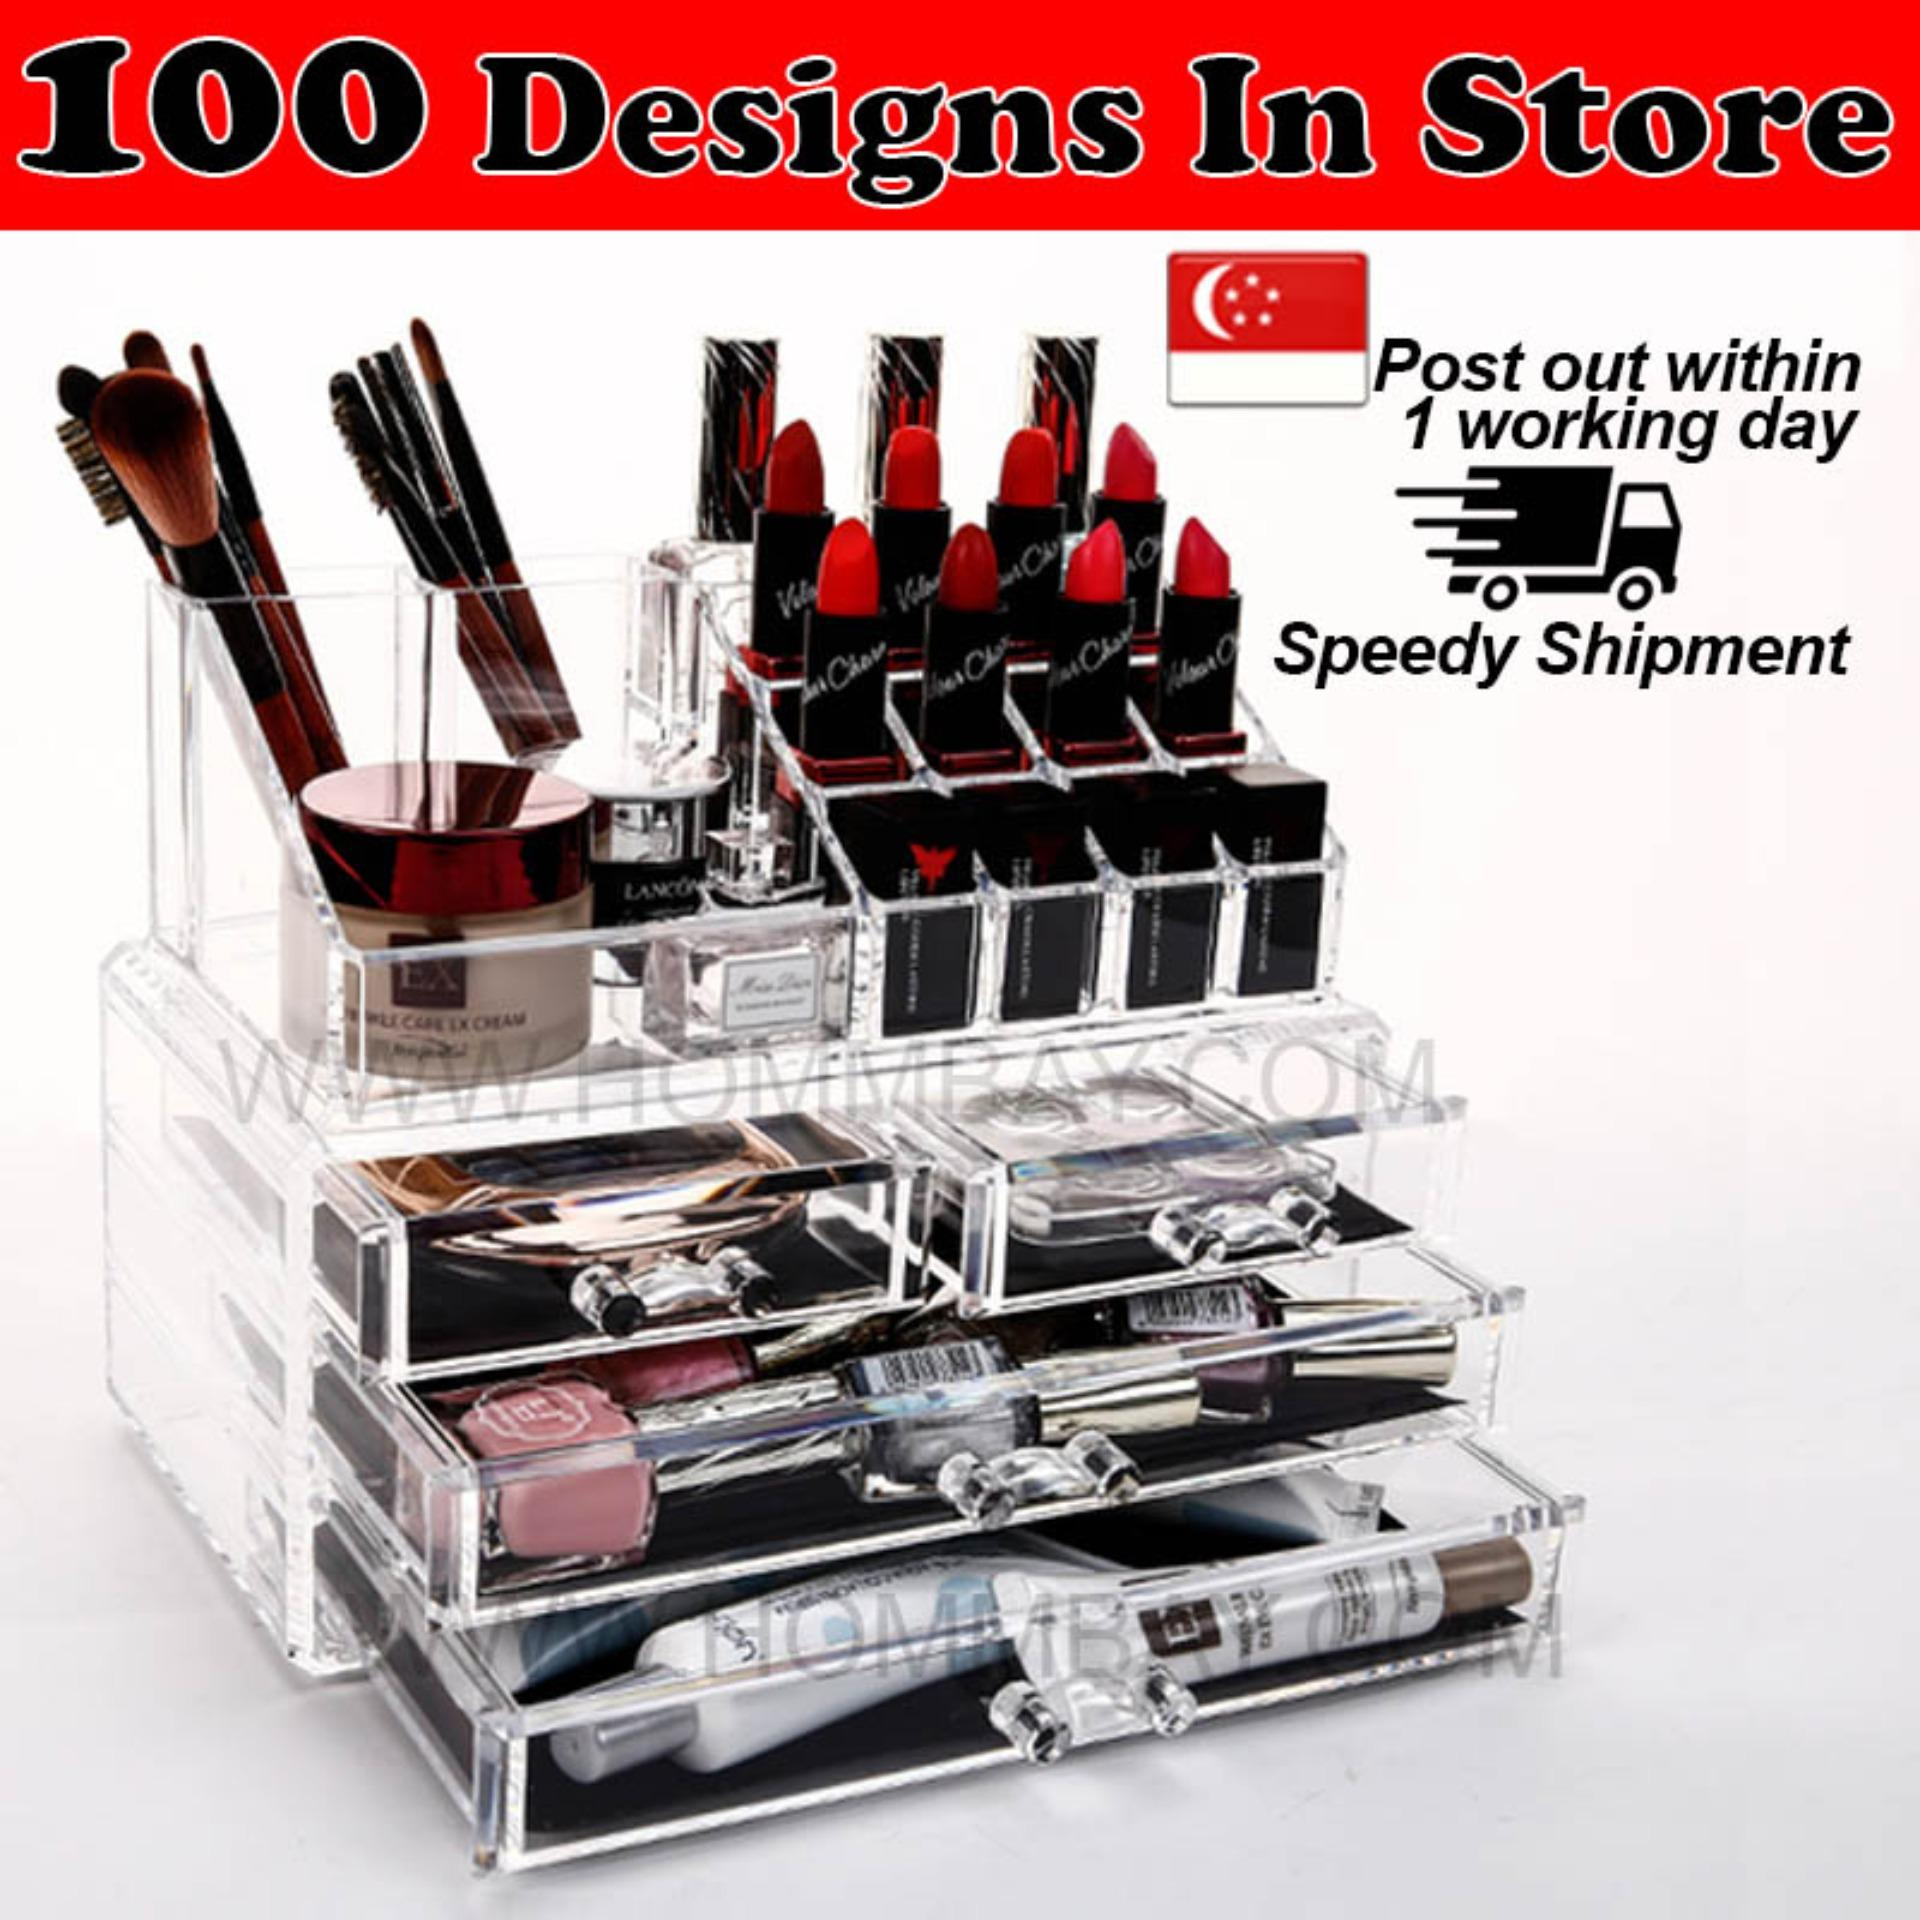 Discounted Large Acrylic Make Up Makeup Cosmetic Organiser Organizer Storage Box Holder